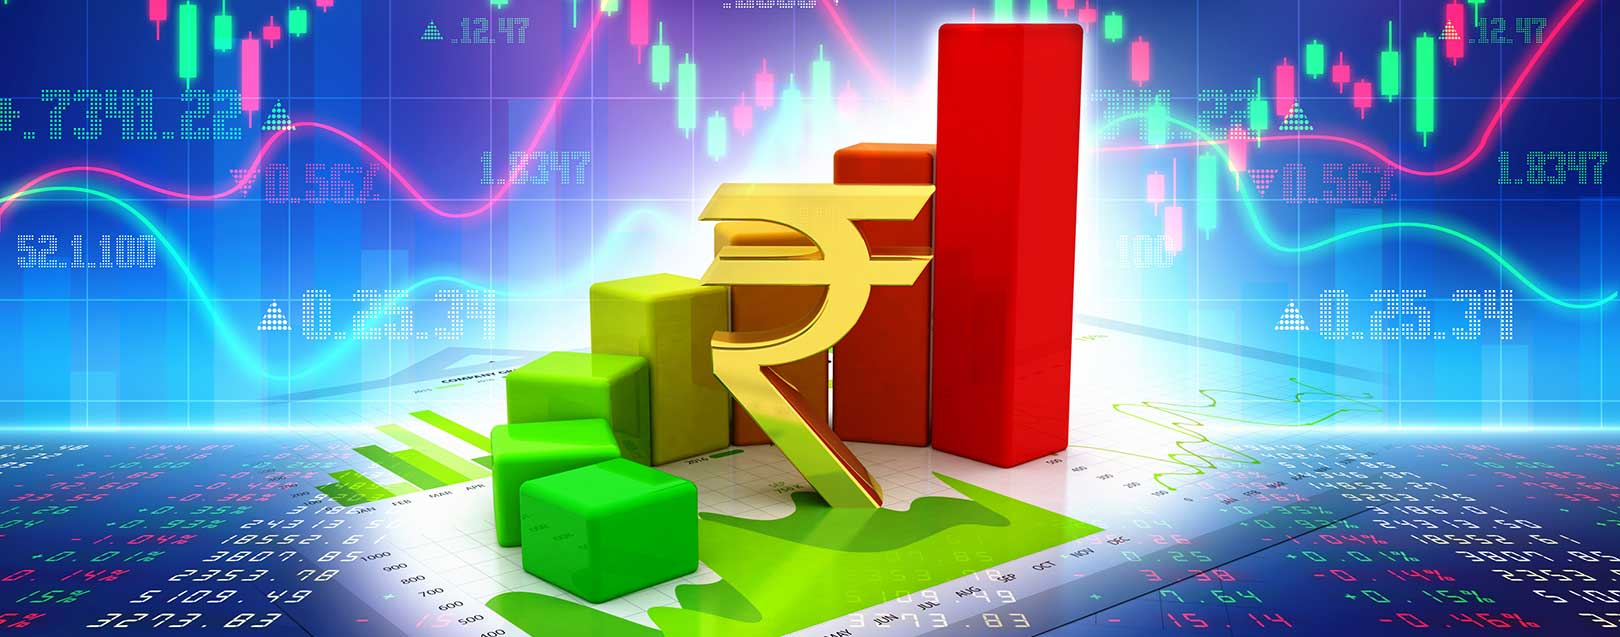 India's economy is recovering; to grow at 7.3% in 2018-19: Fitch